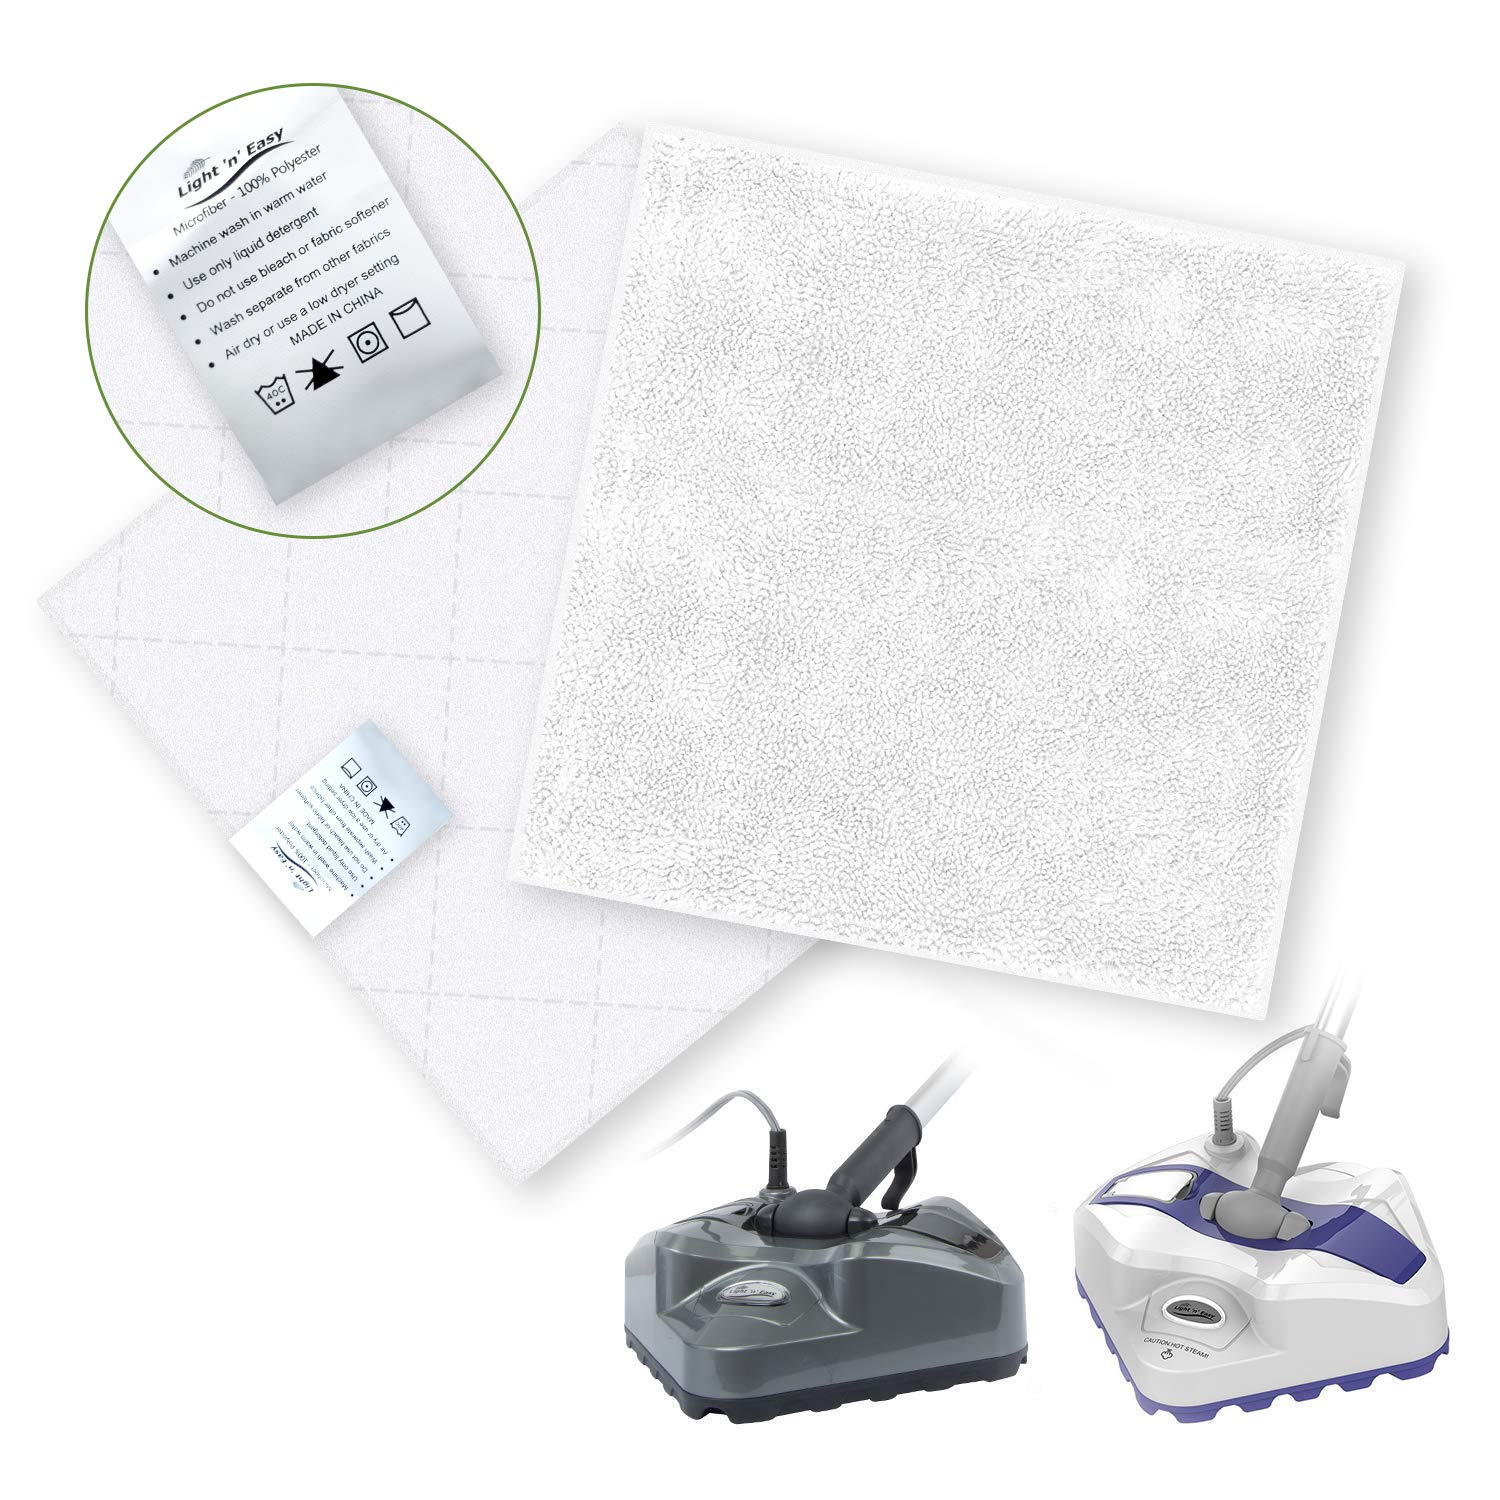 LIGHT 'N' EASY Steam Mop Pads S7338 and S7339 Floor Steamer Mop for Grout,Laminate,Carpet,Cleaning Machine with Automatic Steam Control,Electric Mop Steam Cleaner (White) LIGHT 'N' EASY S733801